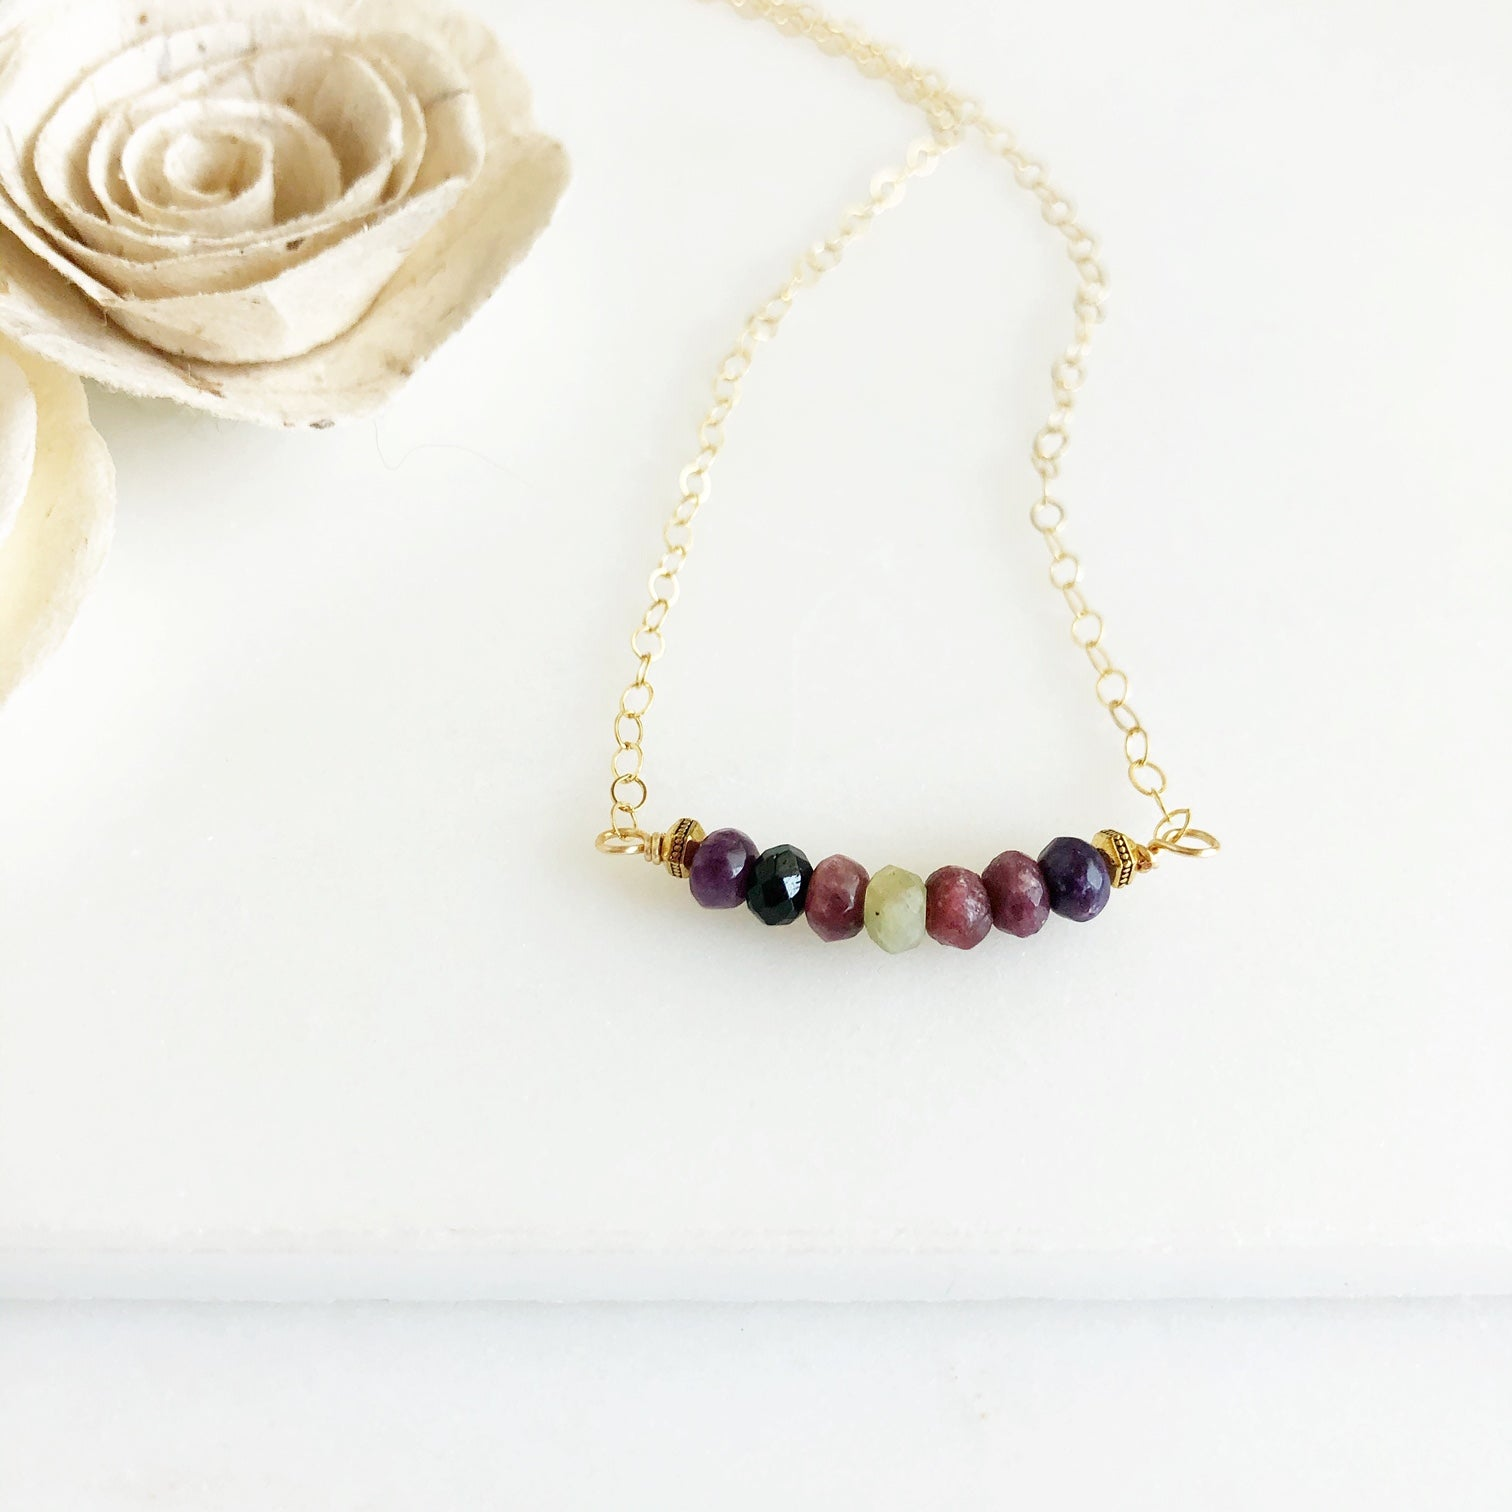 Beaded Bar Necklace. Tourmaline Beaded Bar Necklace. Beaded Necklace. Bar Necklace. Gold Necklace.